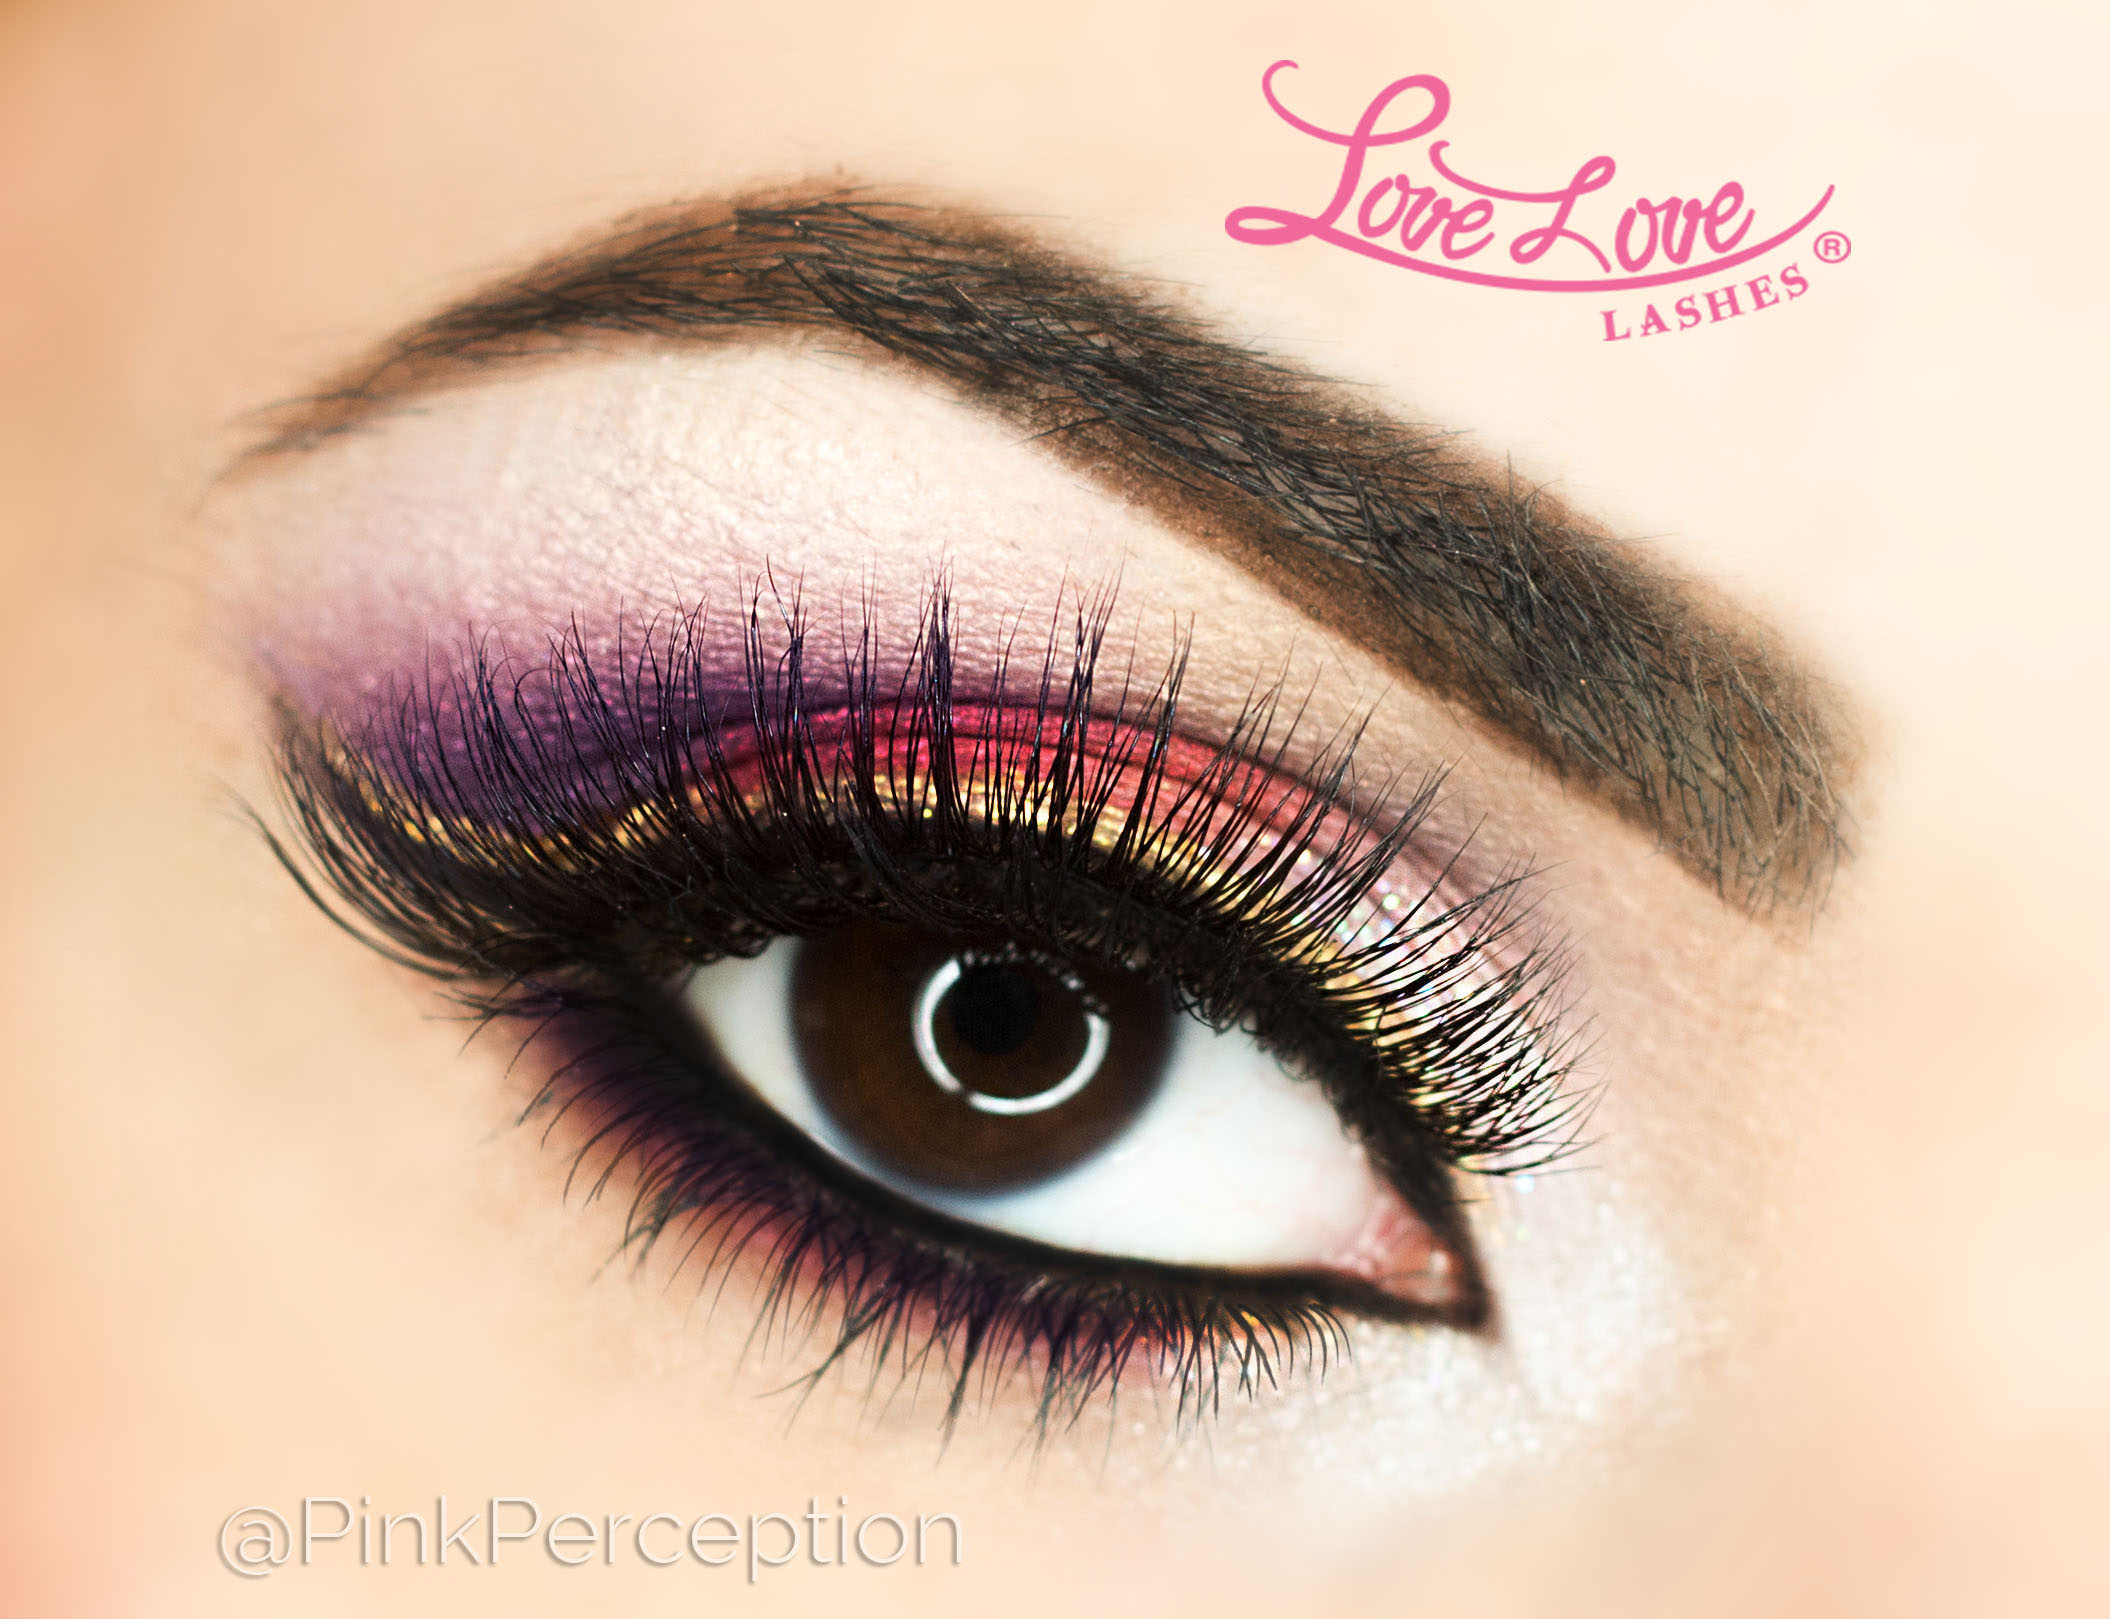 pinkperception lovelove lashes hollywood makeup